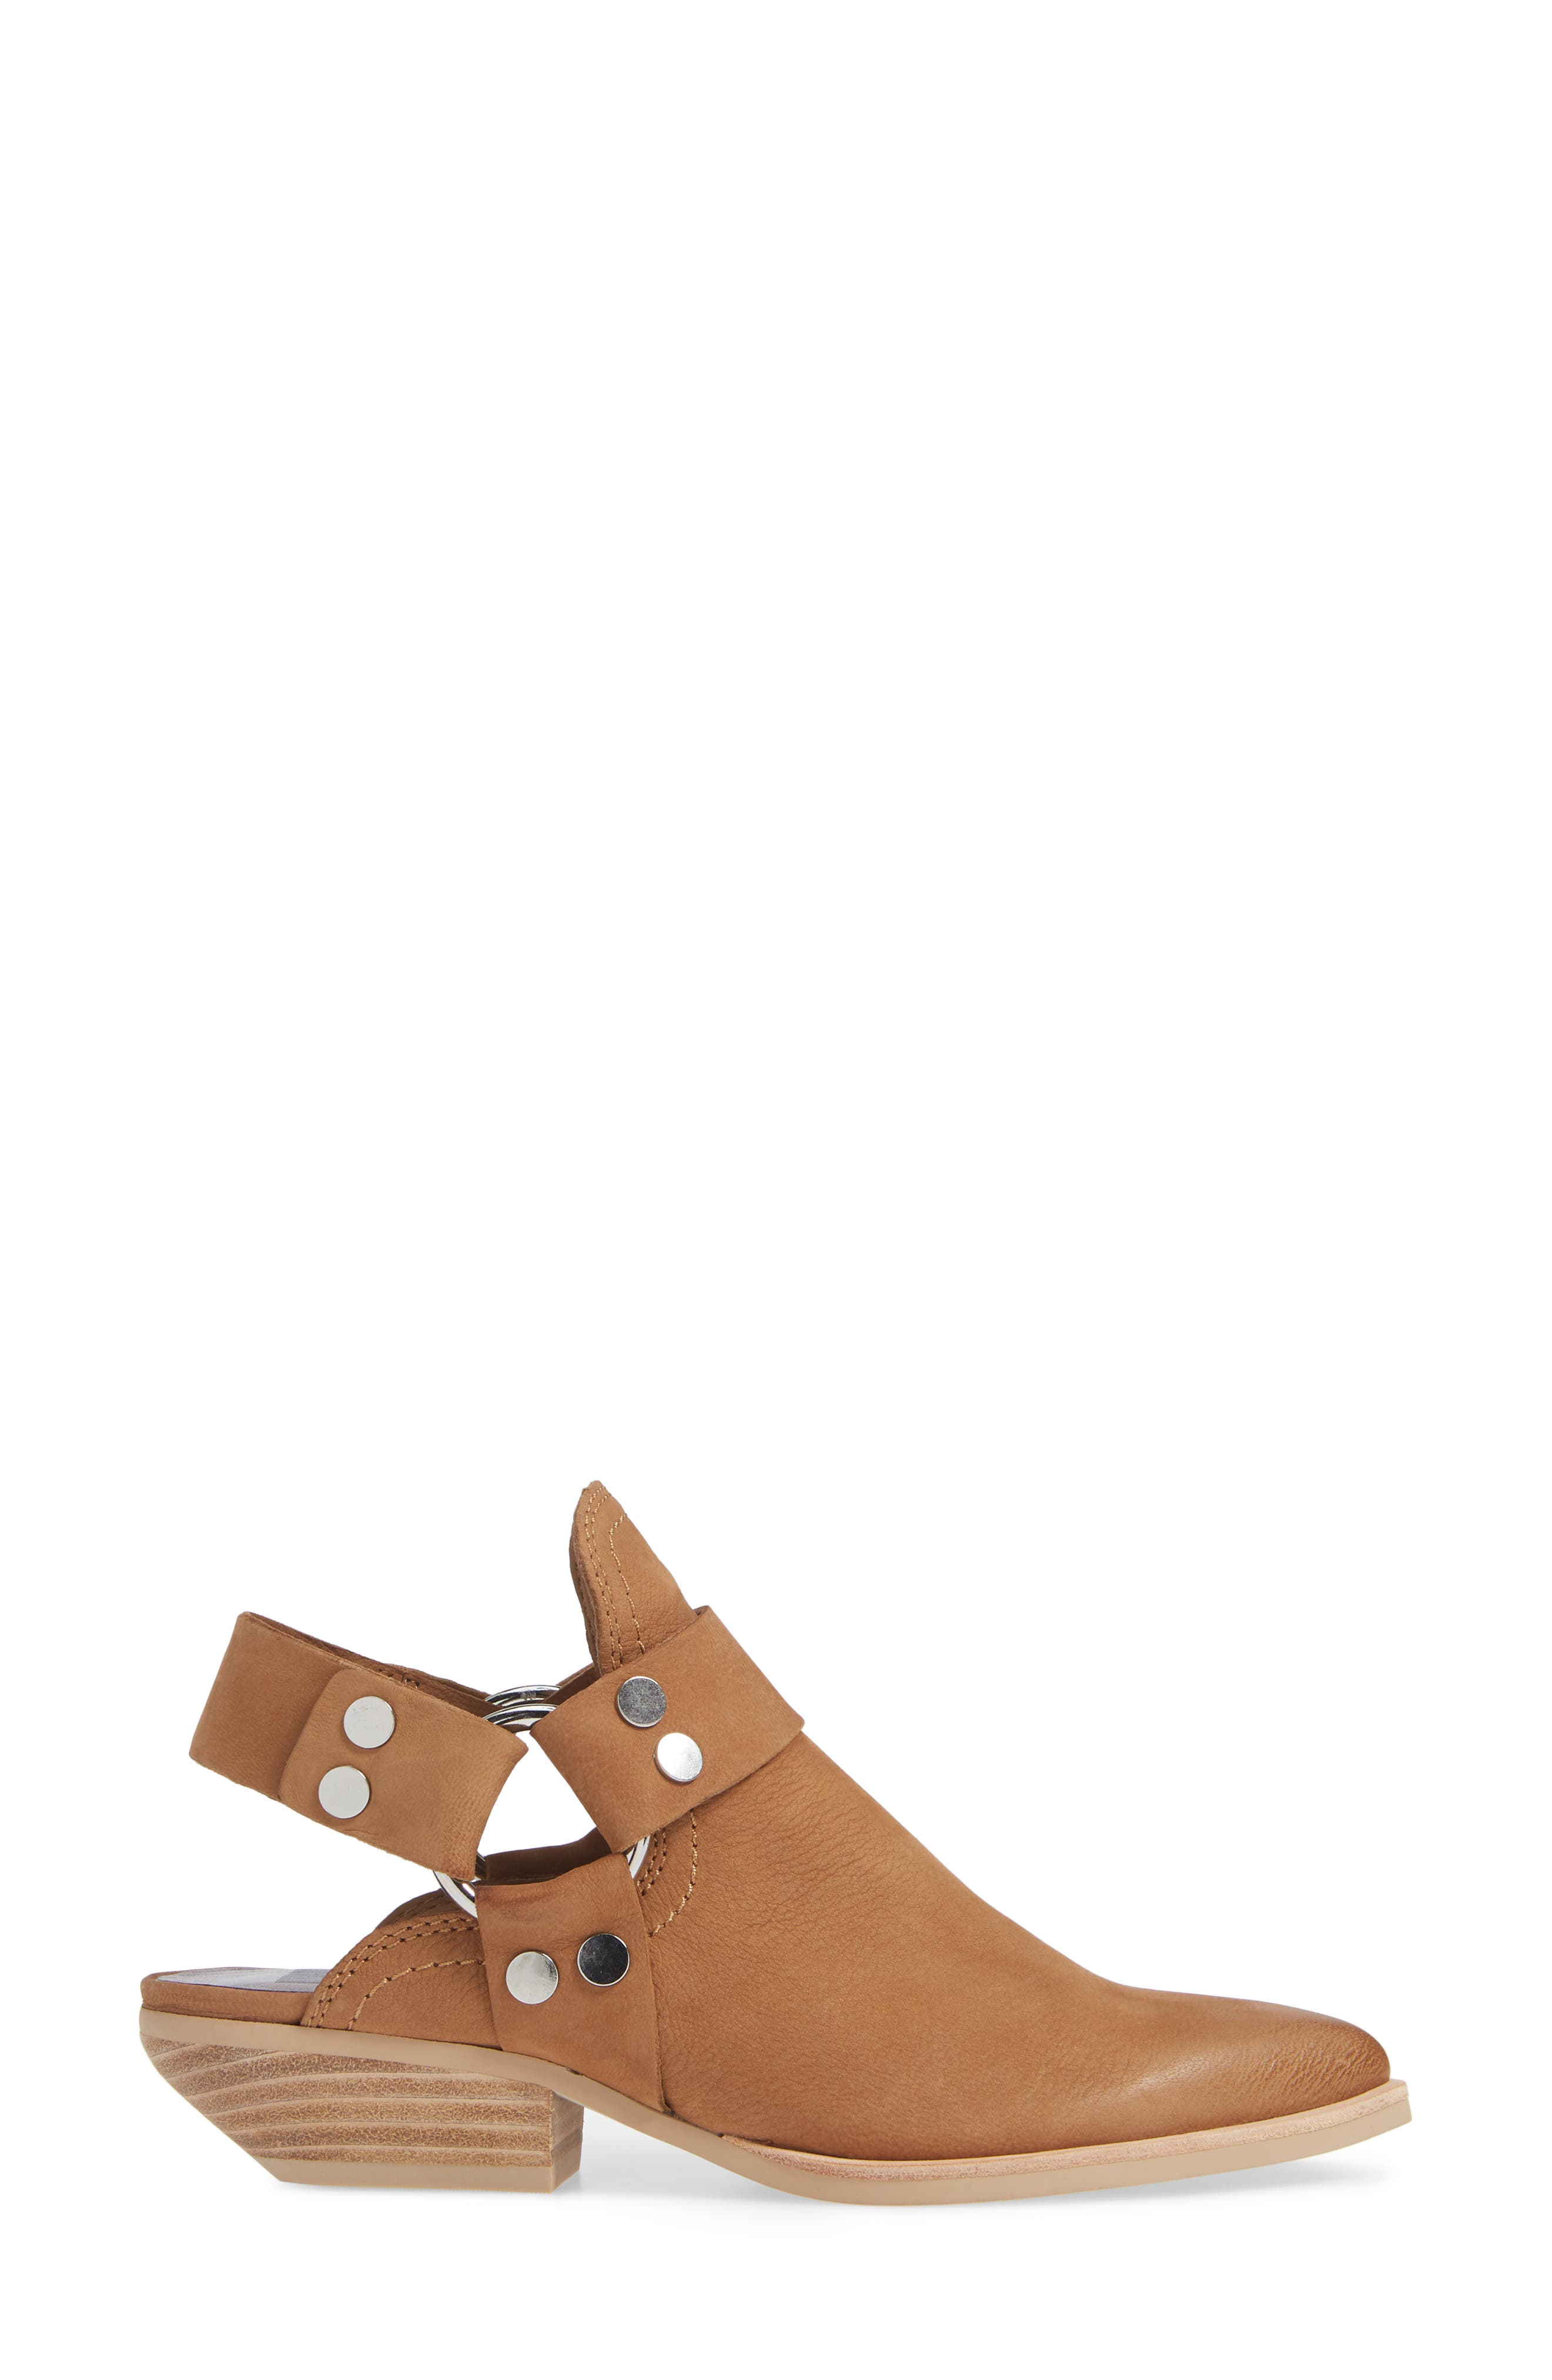 Urban Bootie,                             Alternate thumbnail 3, color,                             TAN NUBUCK LEATHER